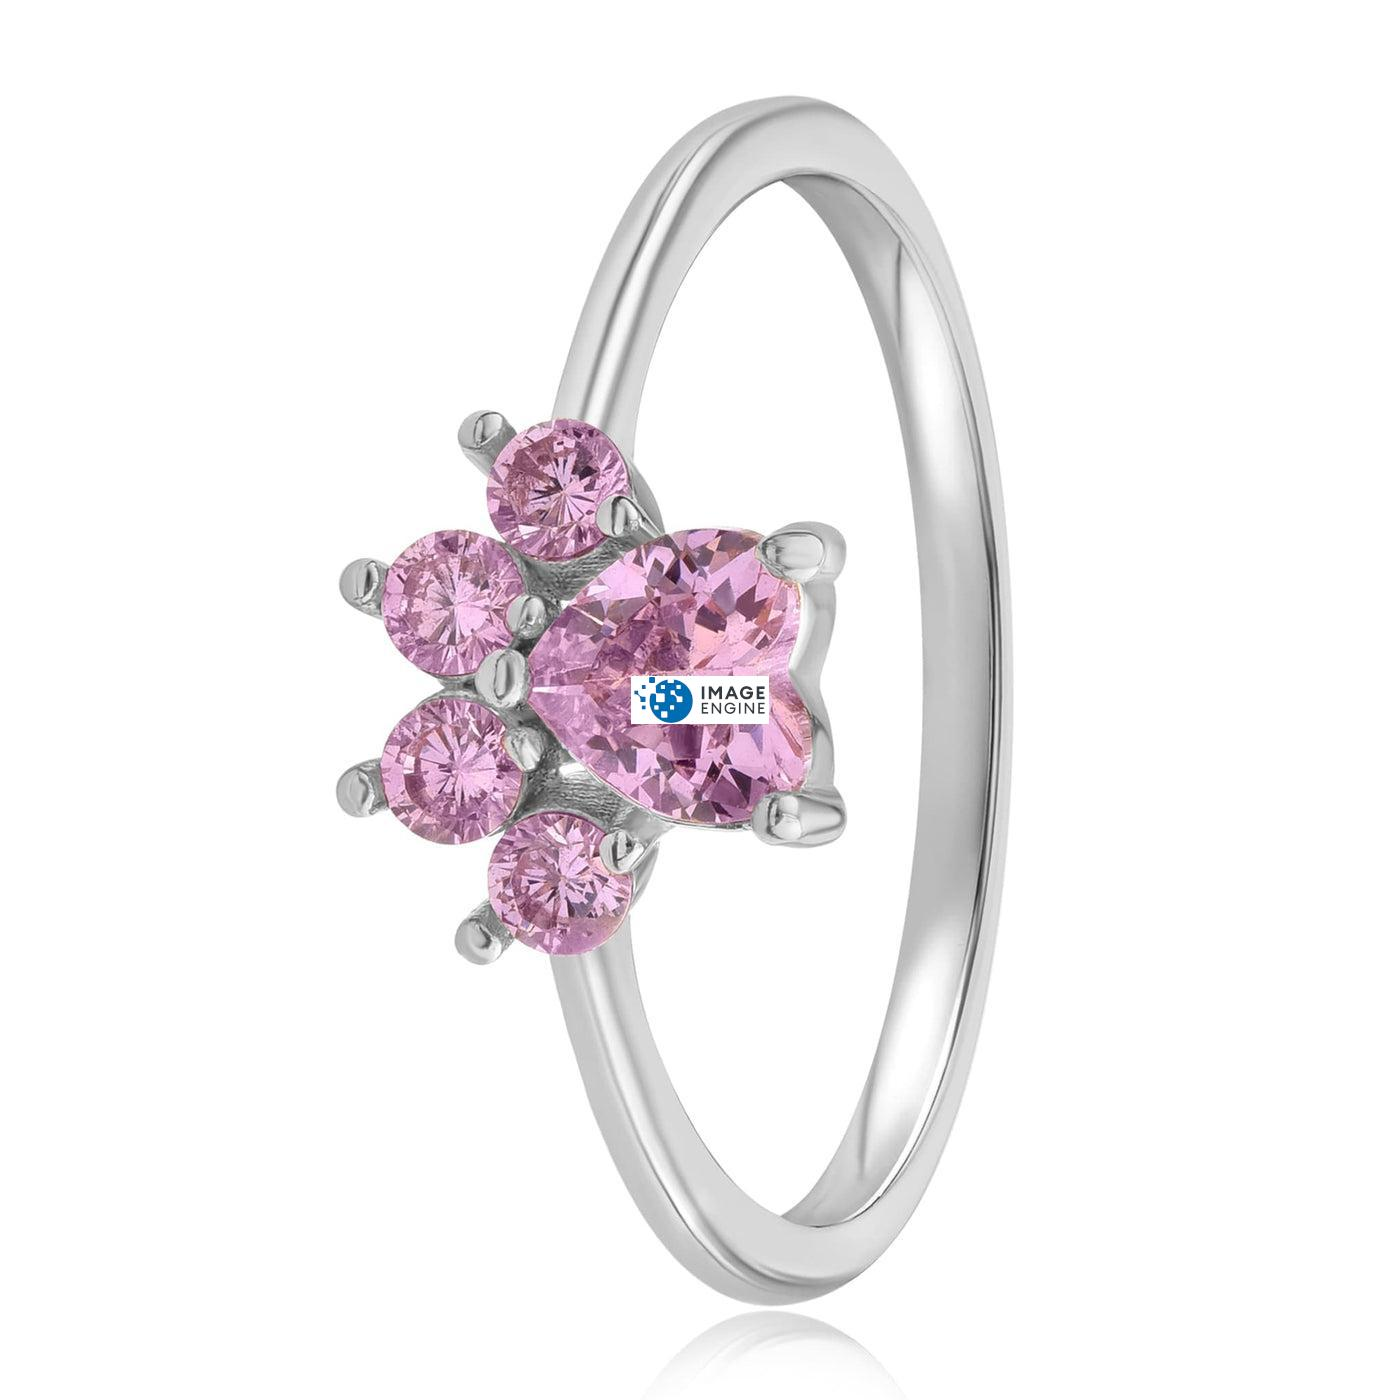 Bella Paw Rose Quartz Ring - Side View - 925 Sterling Silver